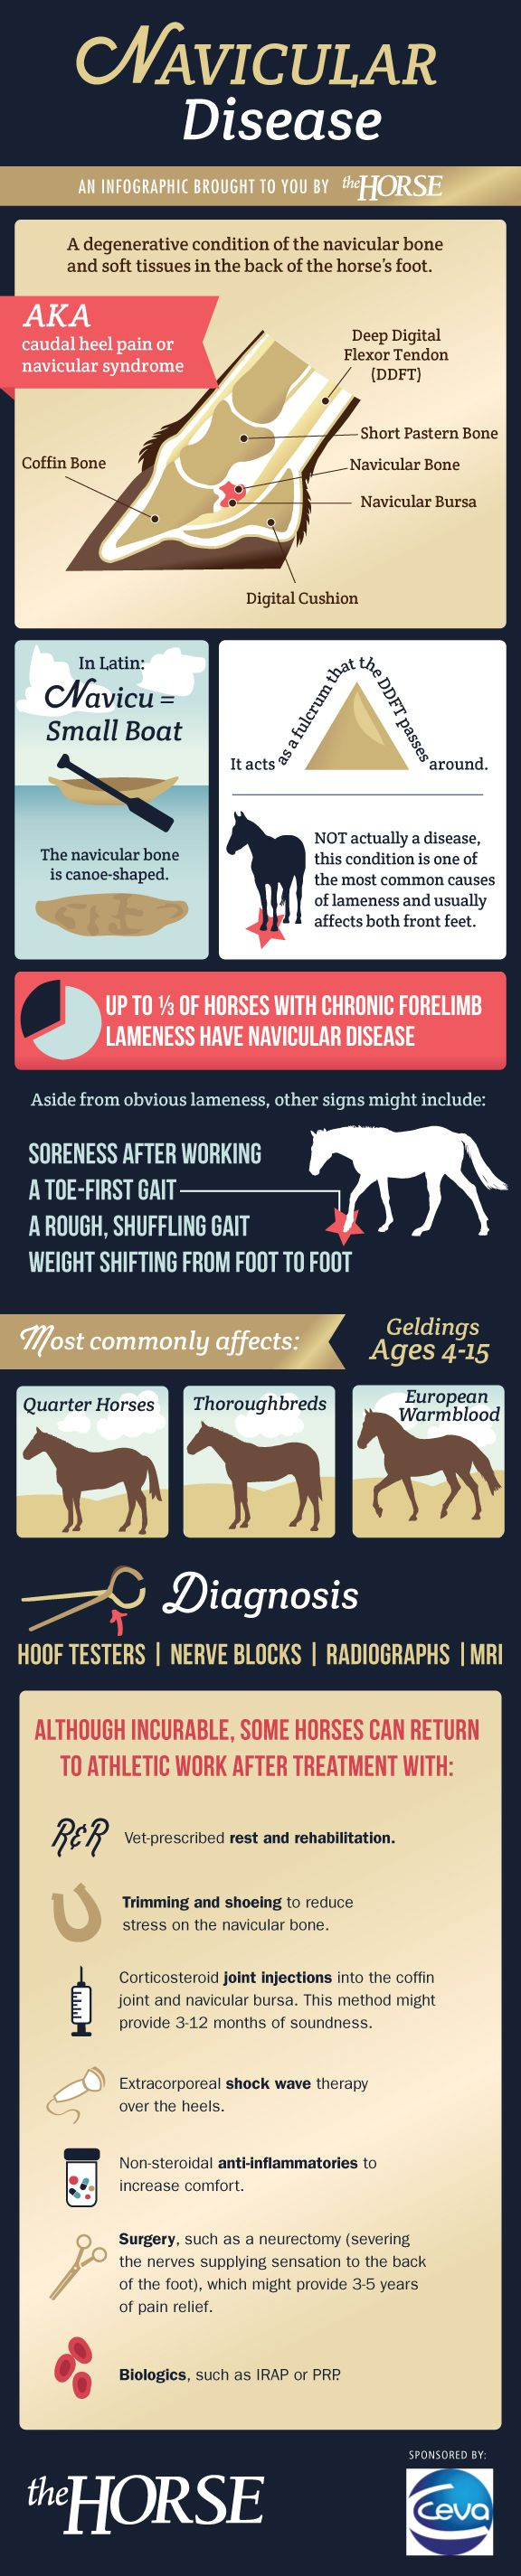 [INFOGRAPHIC] Navicular Disease in Horses - The navicular is a tiny bone that can cause big problems in horses. It and its associated structures are responsible for up to 1/3 of all front-limb lamenesses. Learn more in our step-by-step visual guide from TheHorse.com and CEVA.